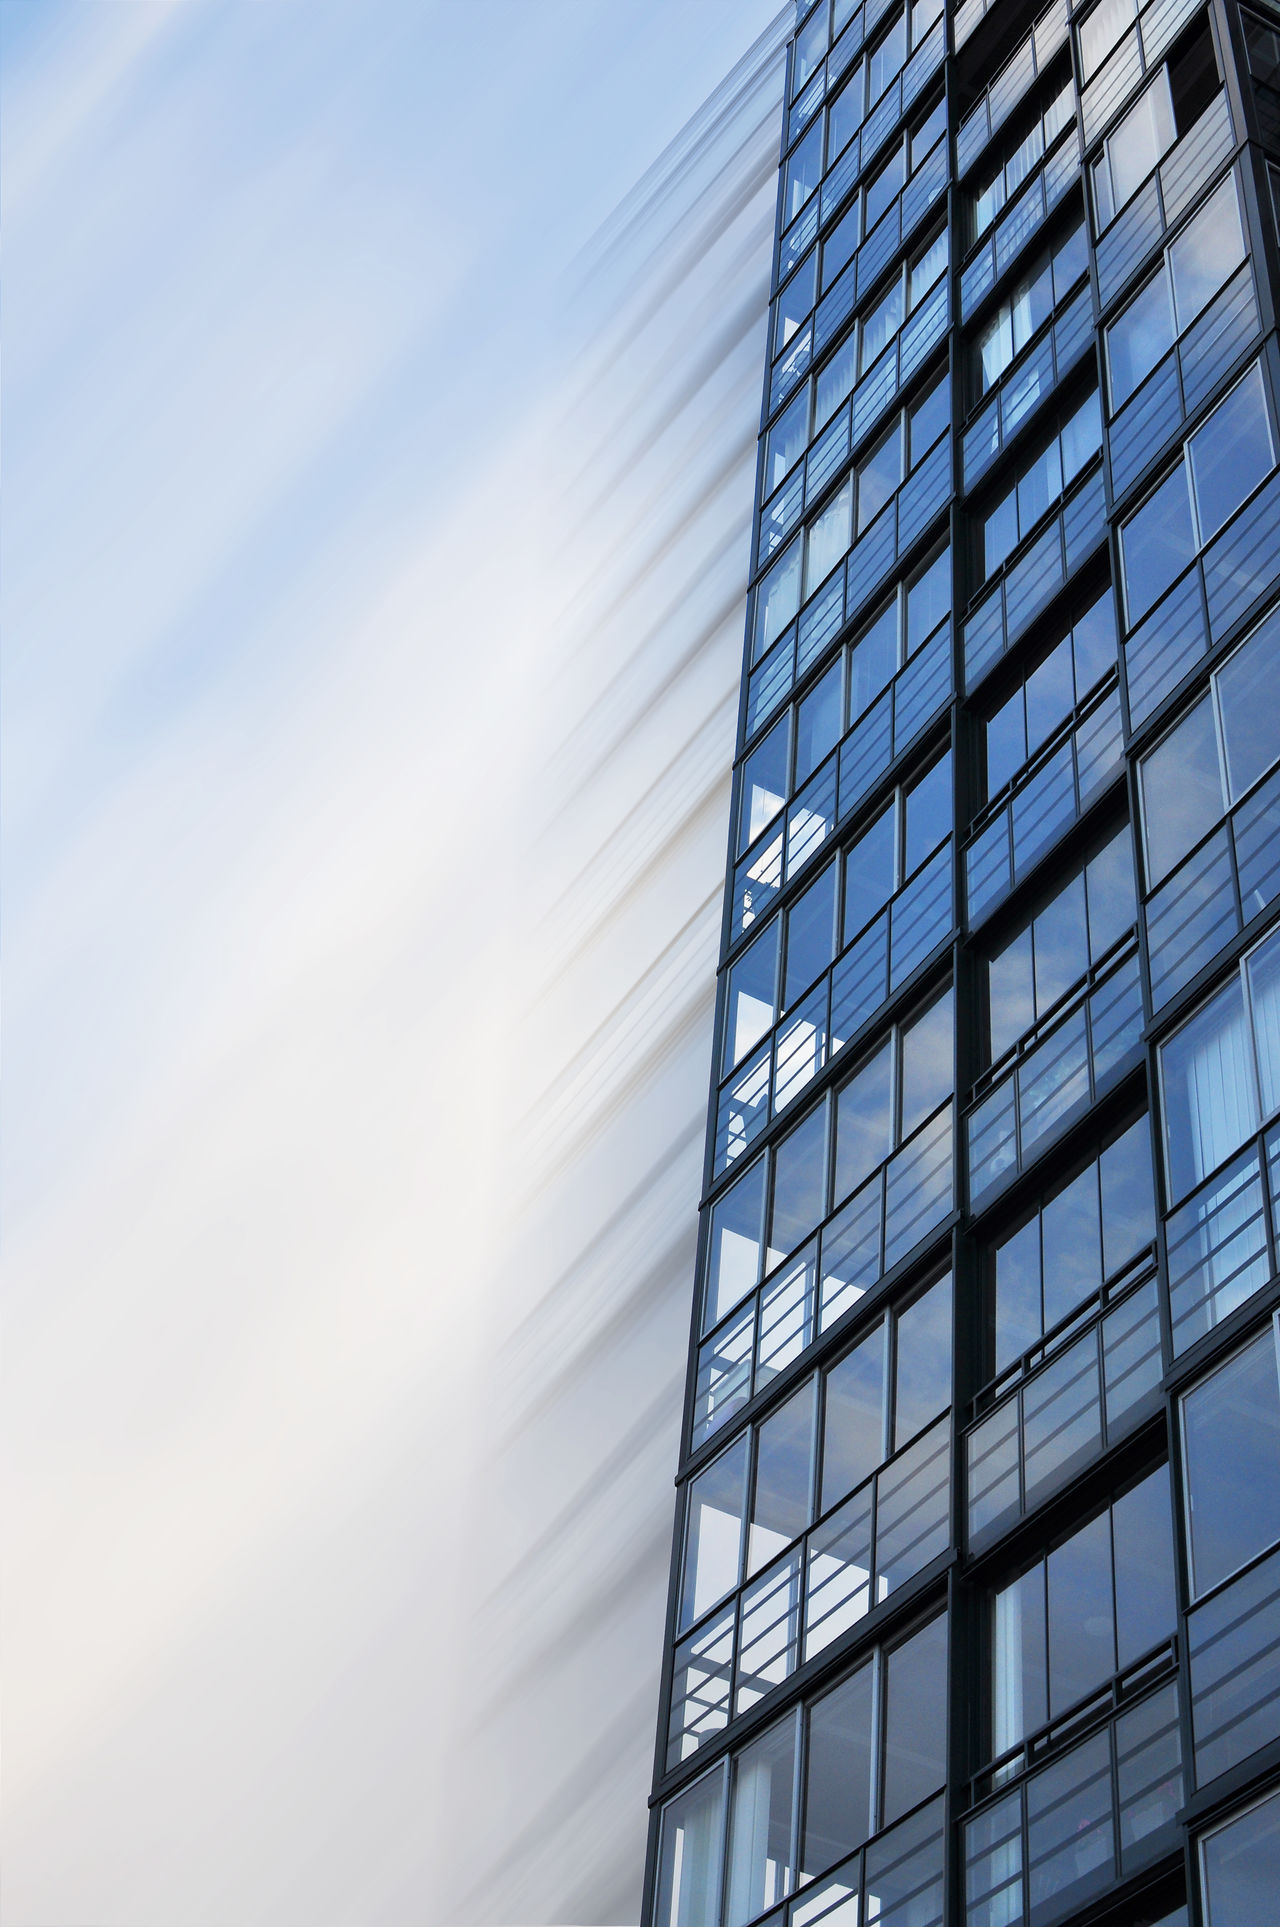 Beautiful stock photos of glas,  Building Exterior,  Built Structure,  City,  Day